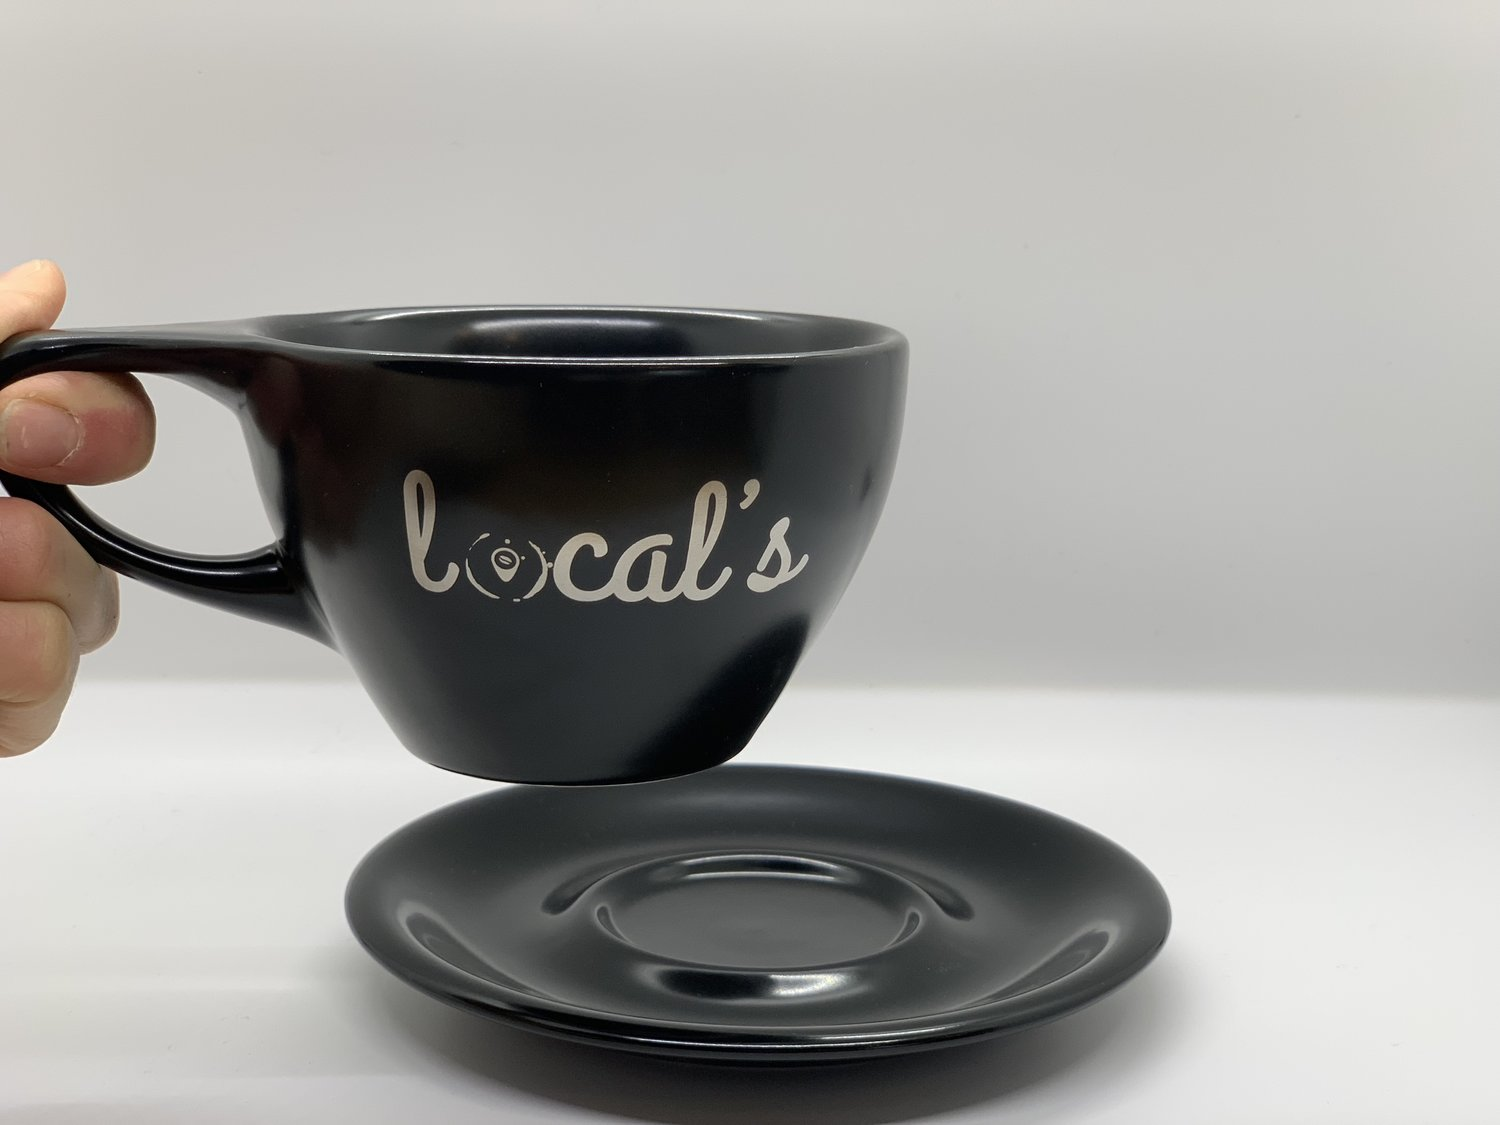 12 oz Latte Cup and Saucer — Local's